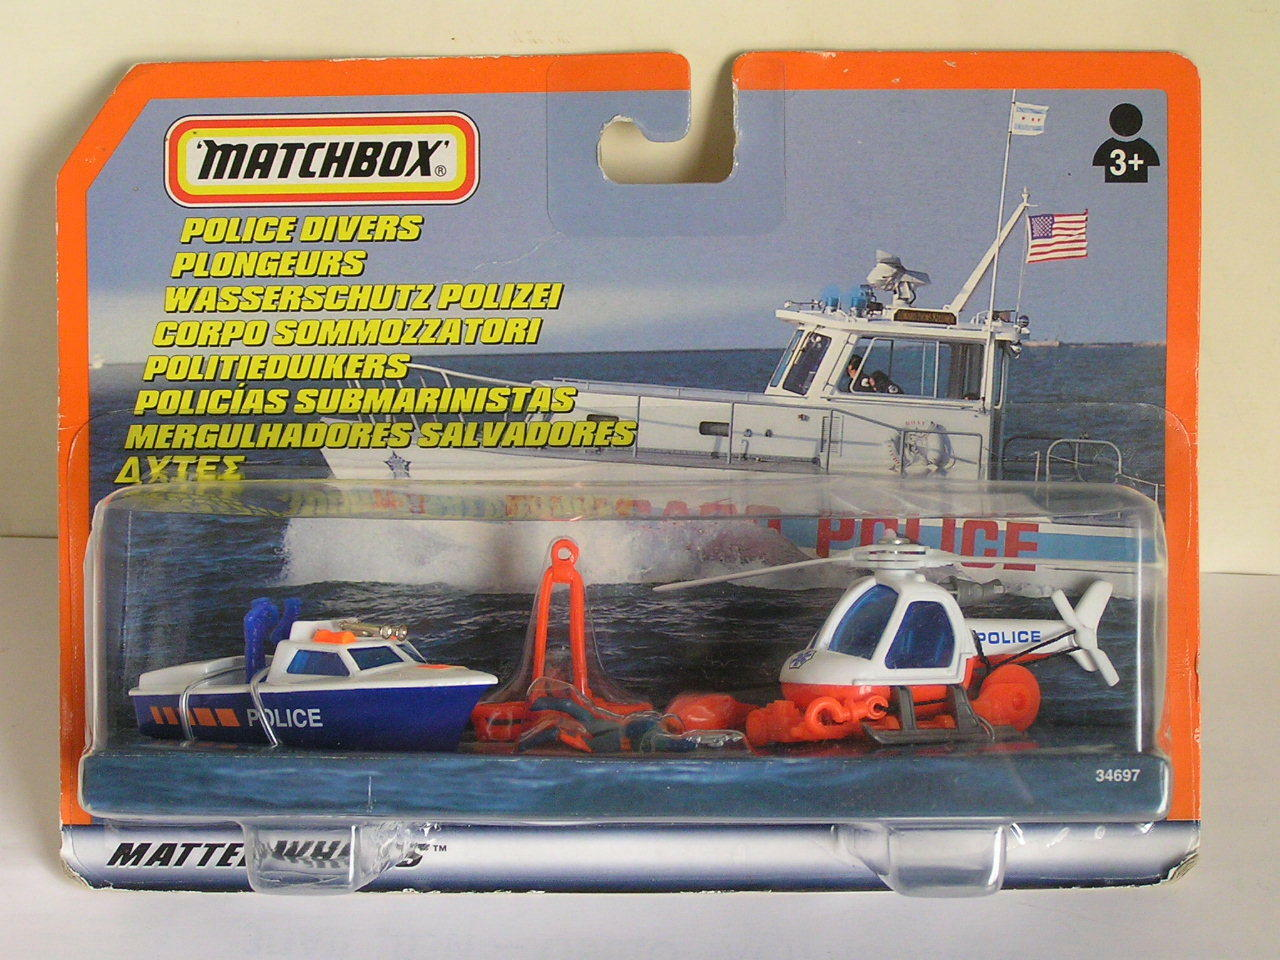 MATCHBOX POLICE DIVERS SET WITH LAUNCH BOAT & HELICOPTER + ACCESSORIES RARE MOC